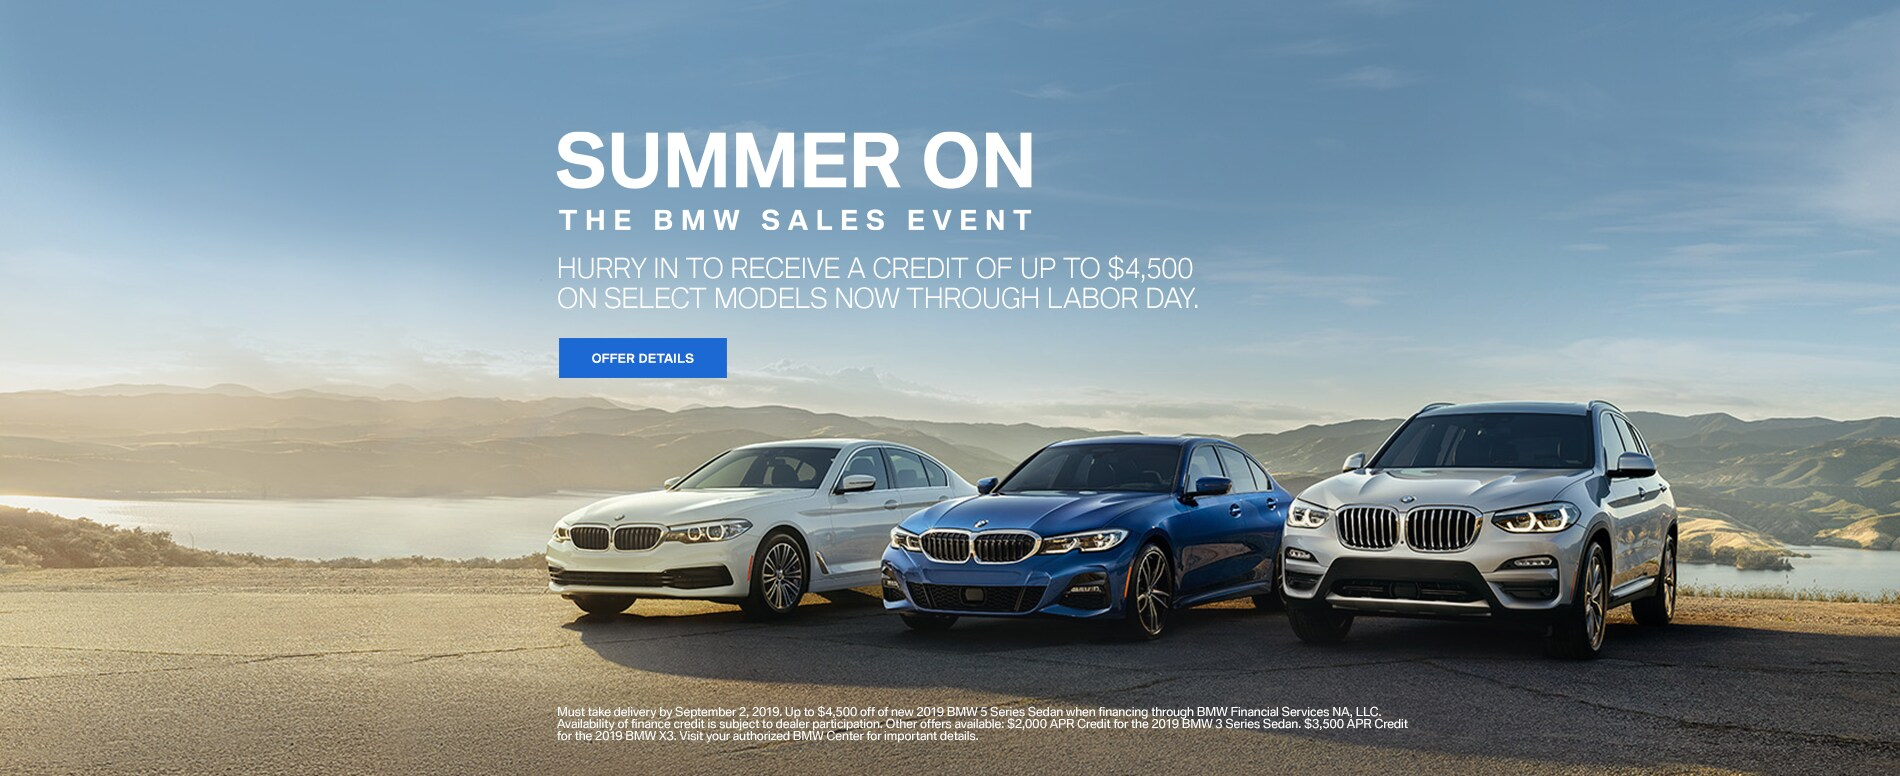 BMW Dealership Milwaukee WI | New & Used BMW Cars, Service, Parts